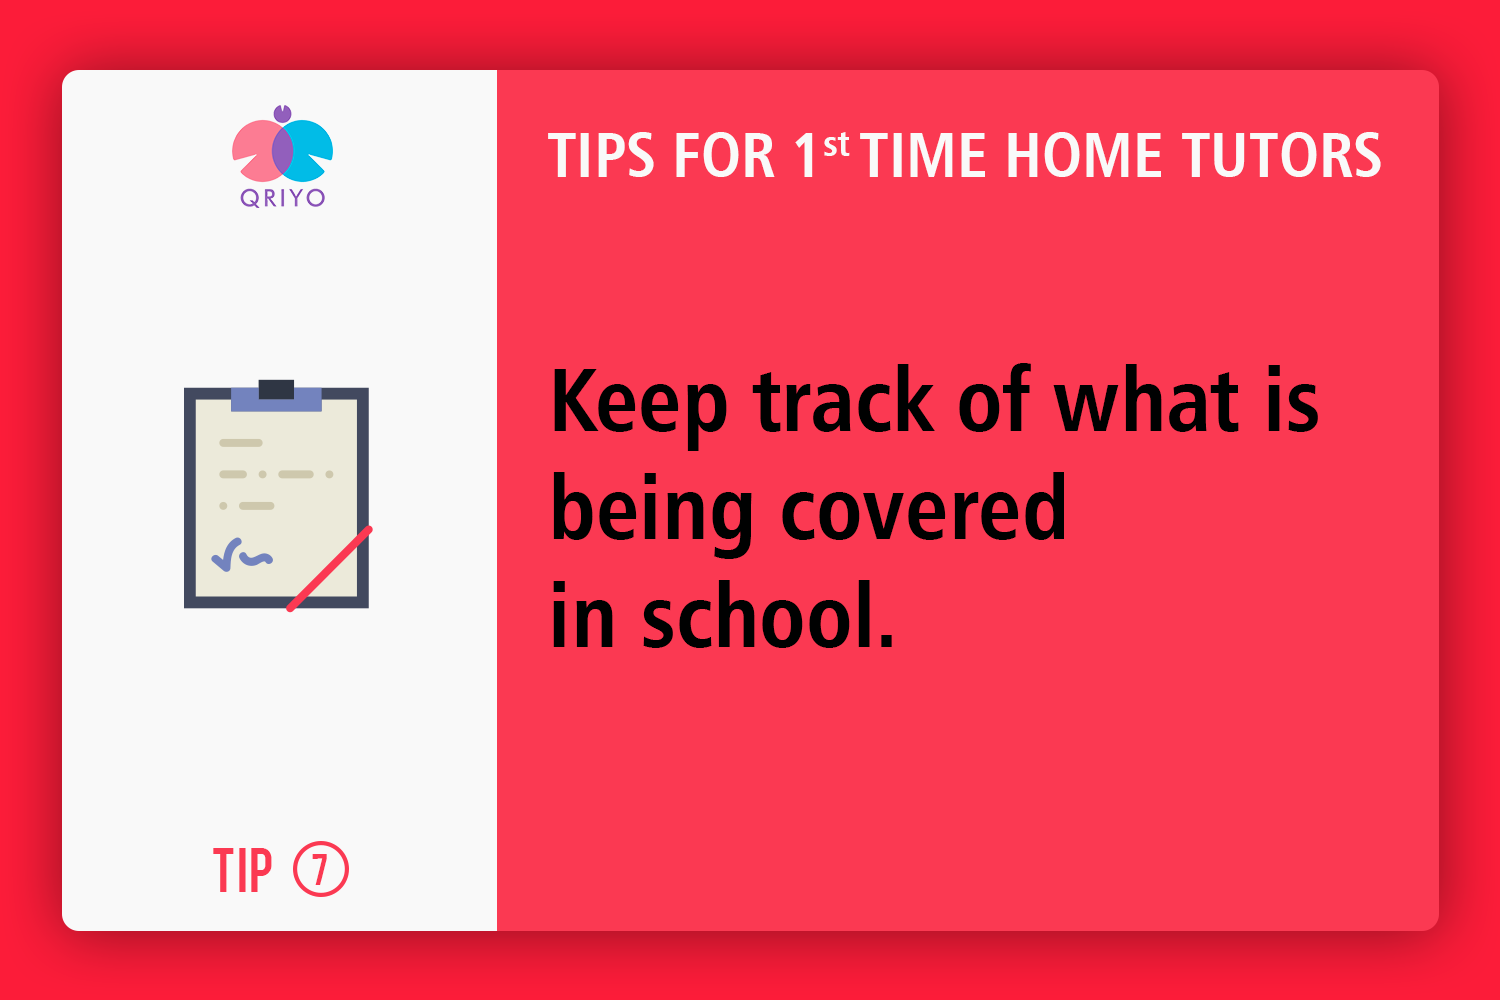 Keep track of what is being covered in schools.